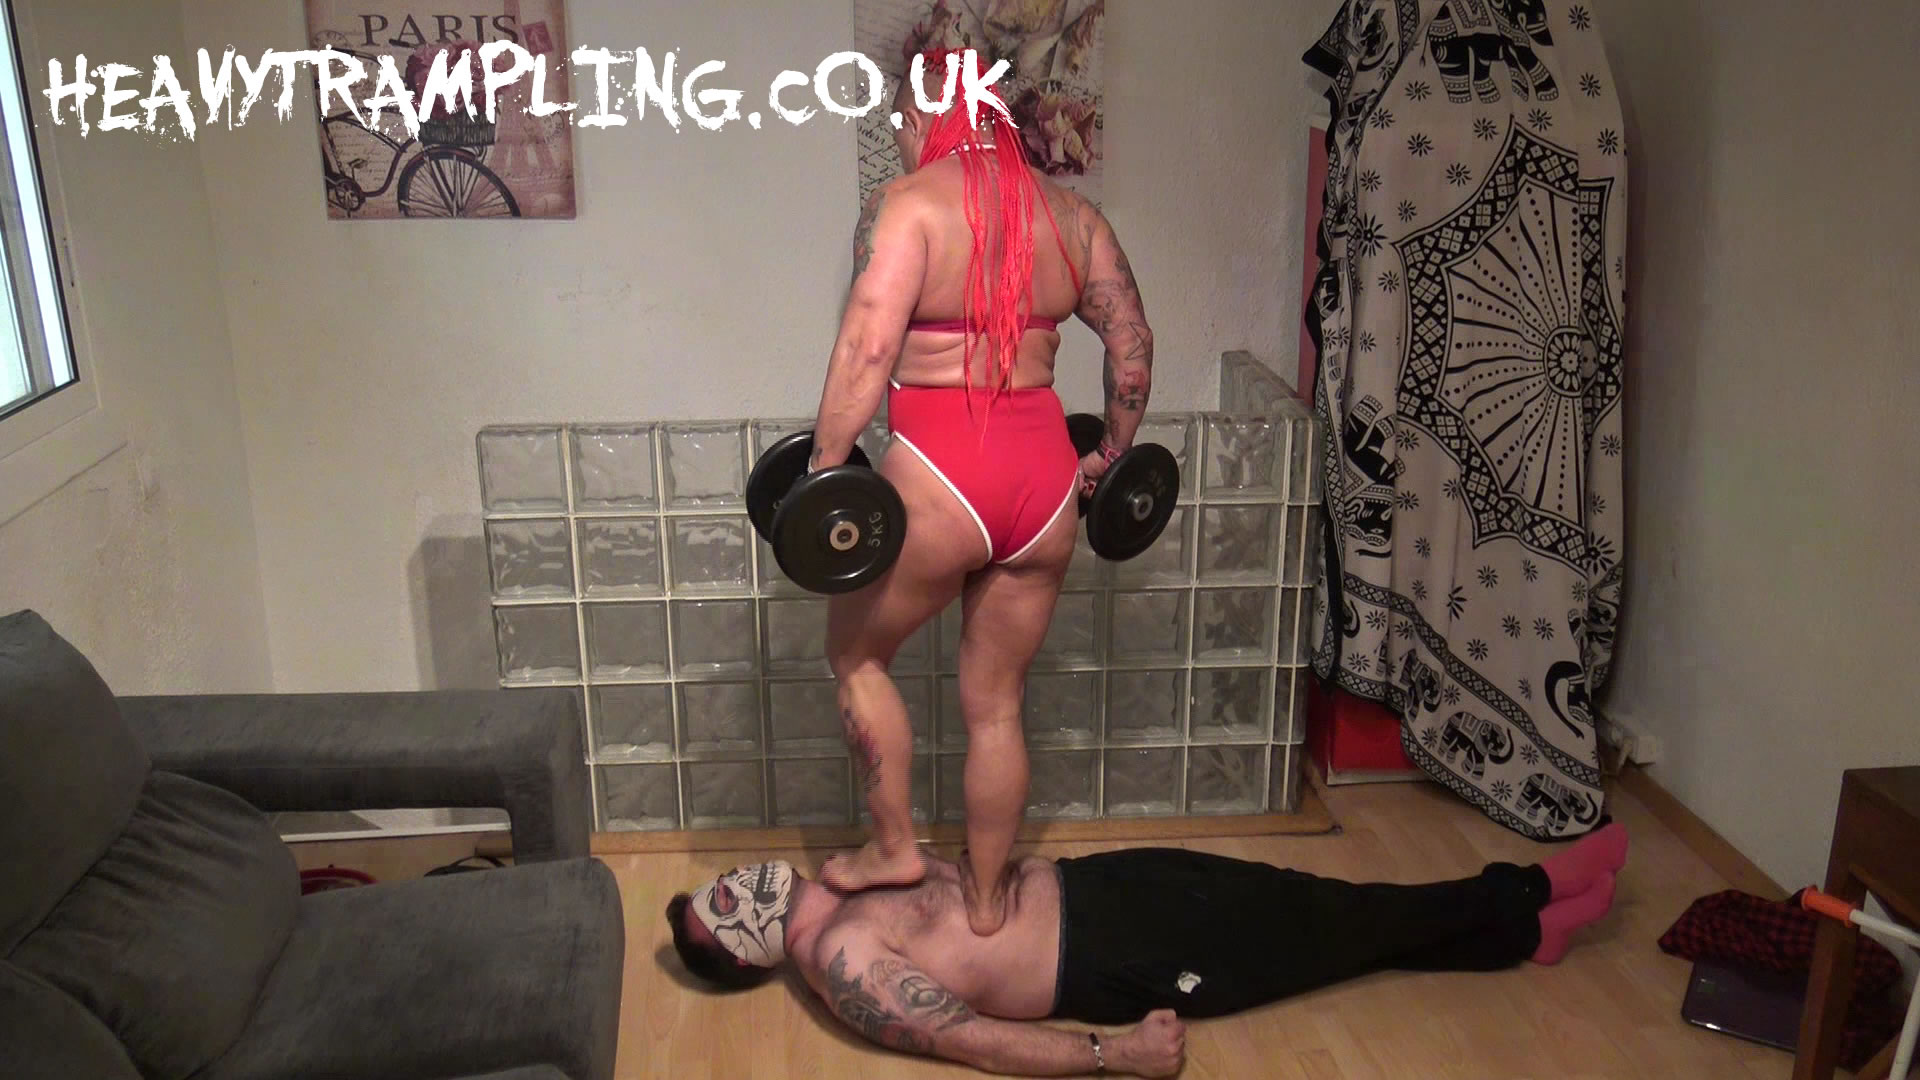 Ruth Big Muscles Weighted Trample 2